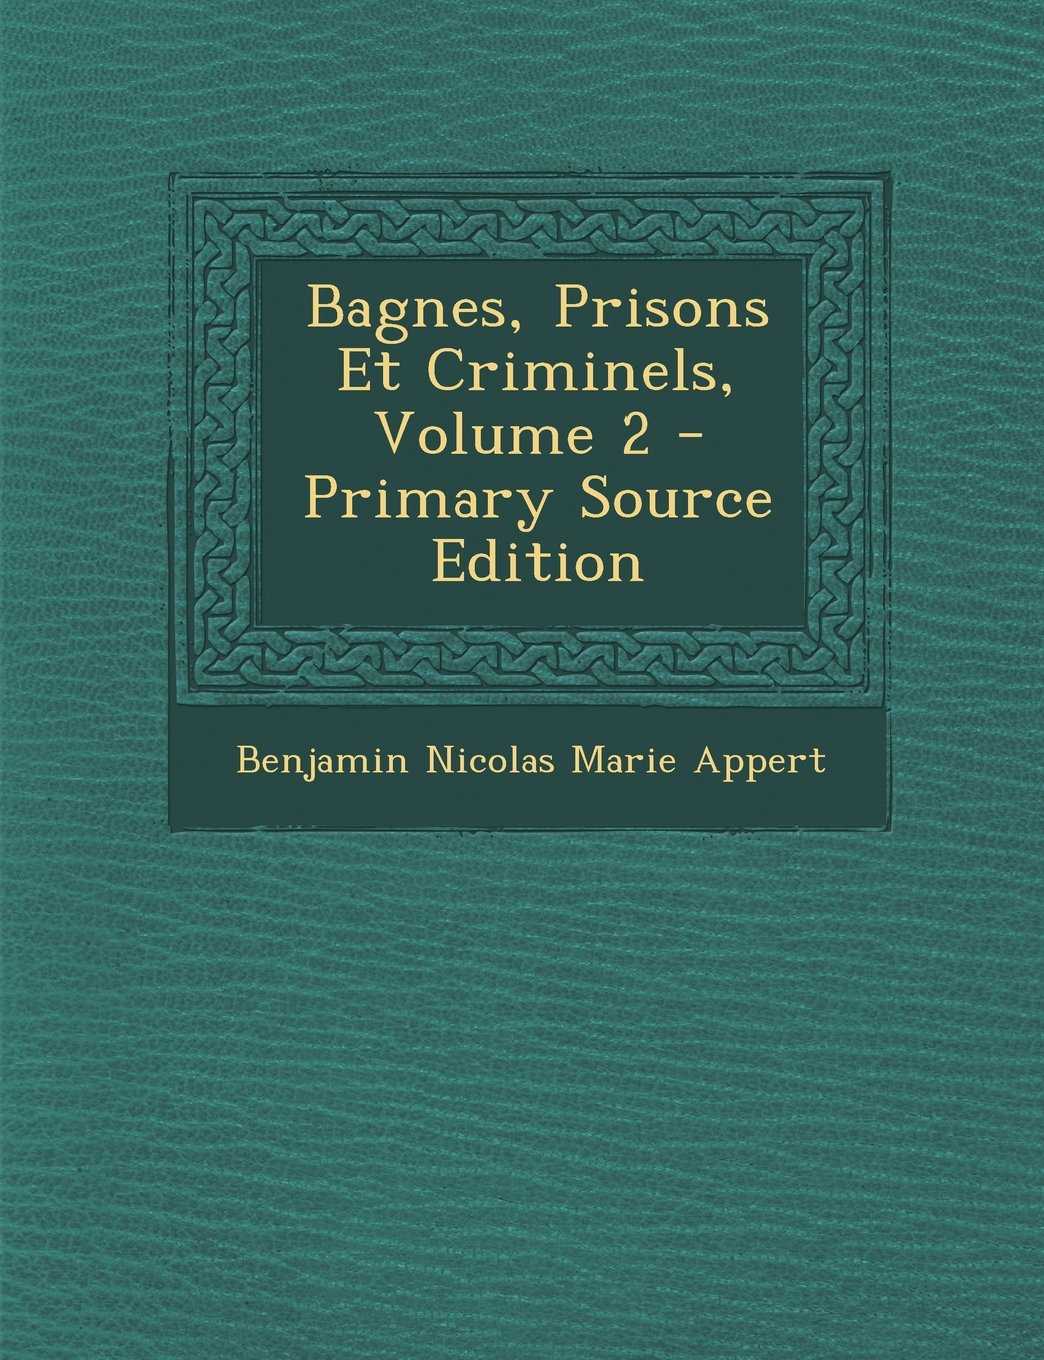 Bagnes, Prisons Et Criminels, Volume 2